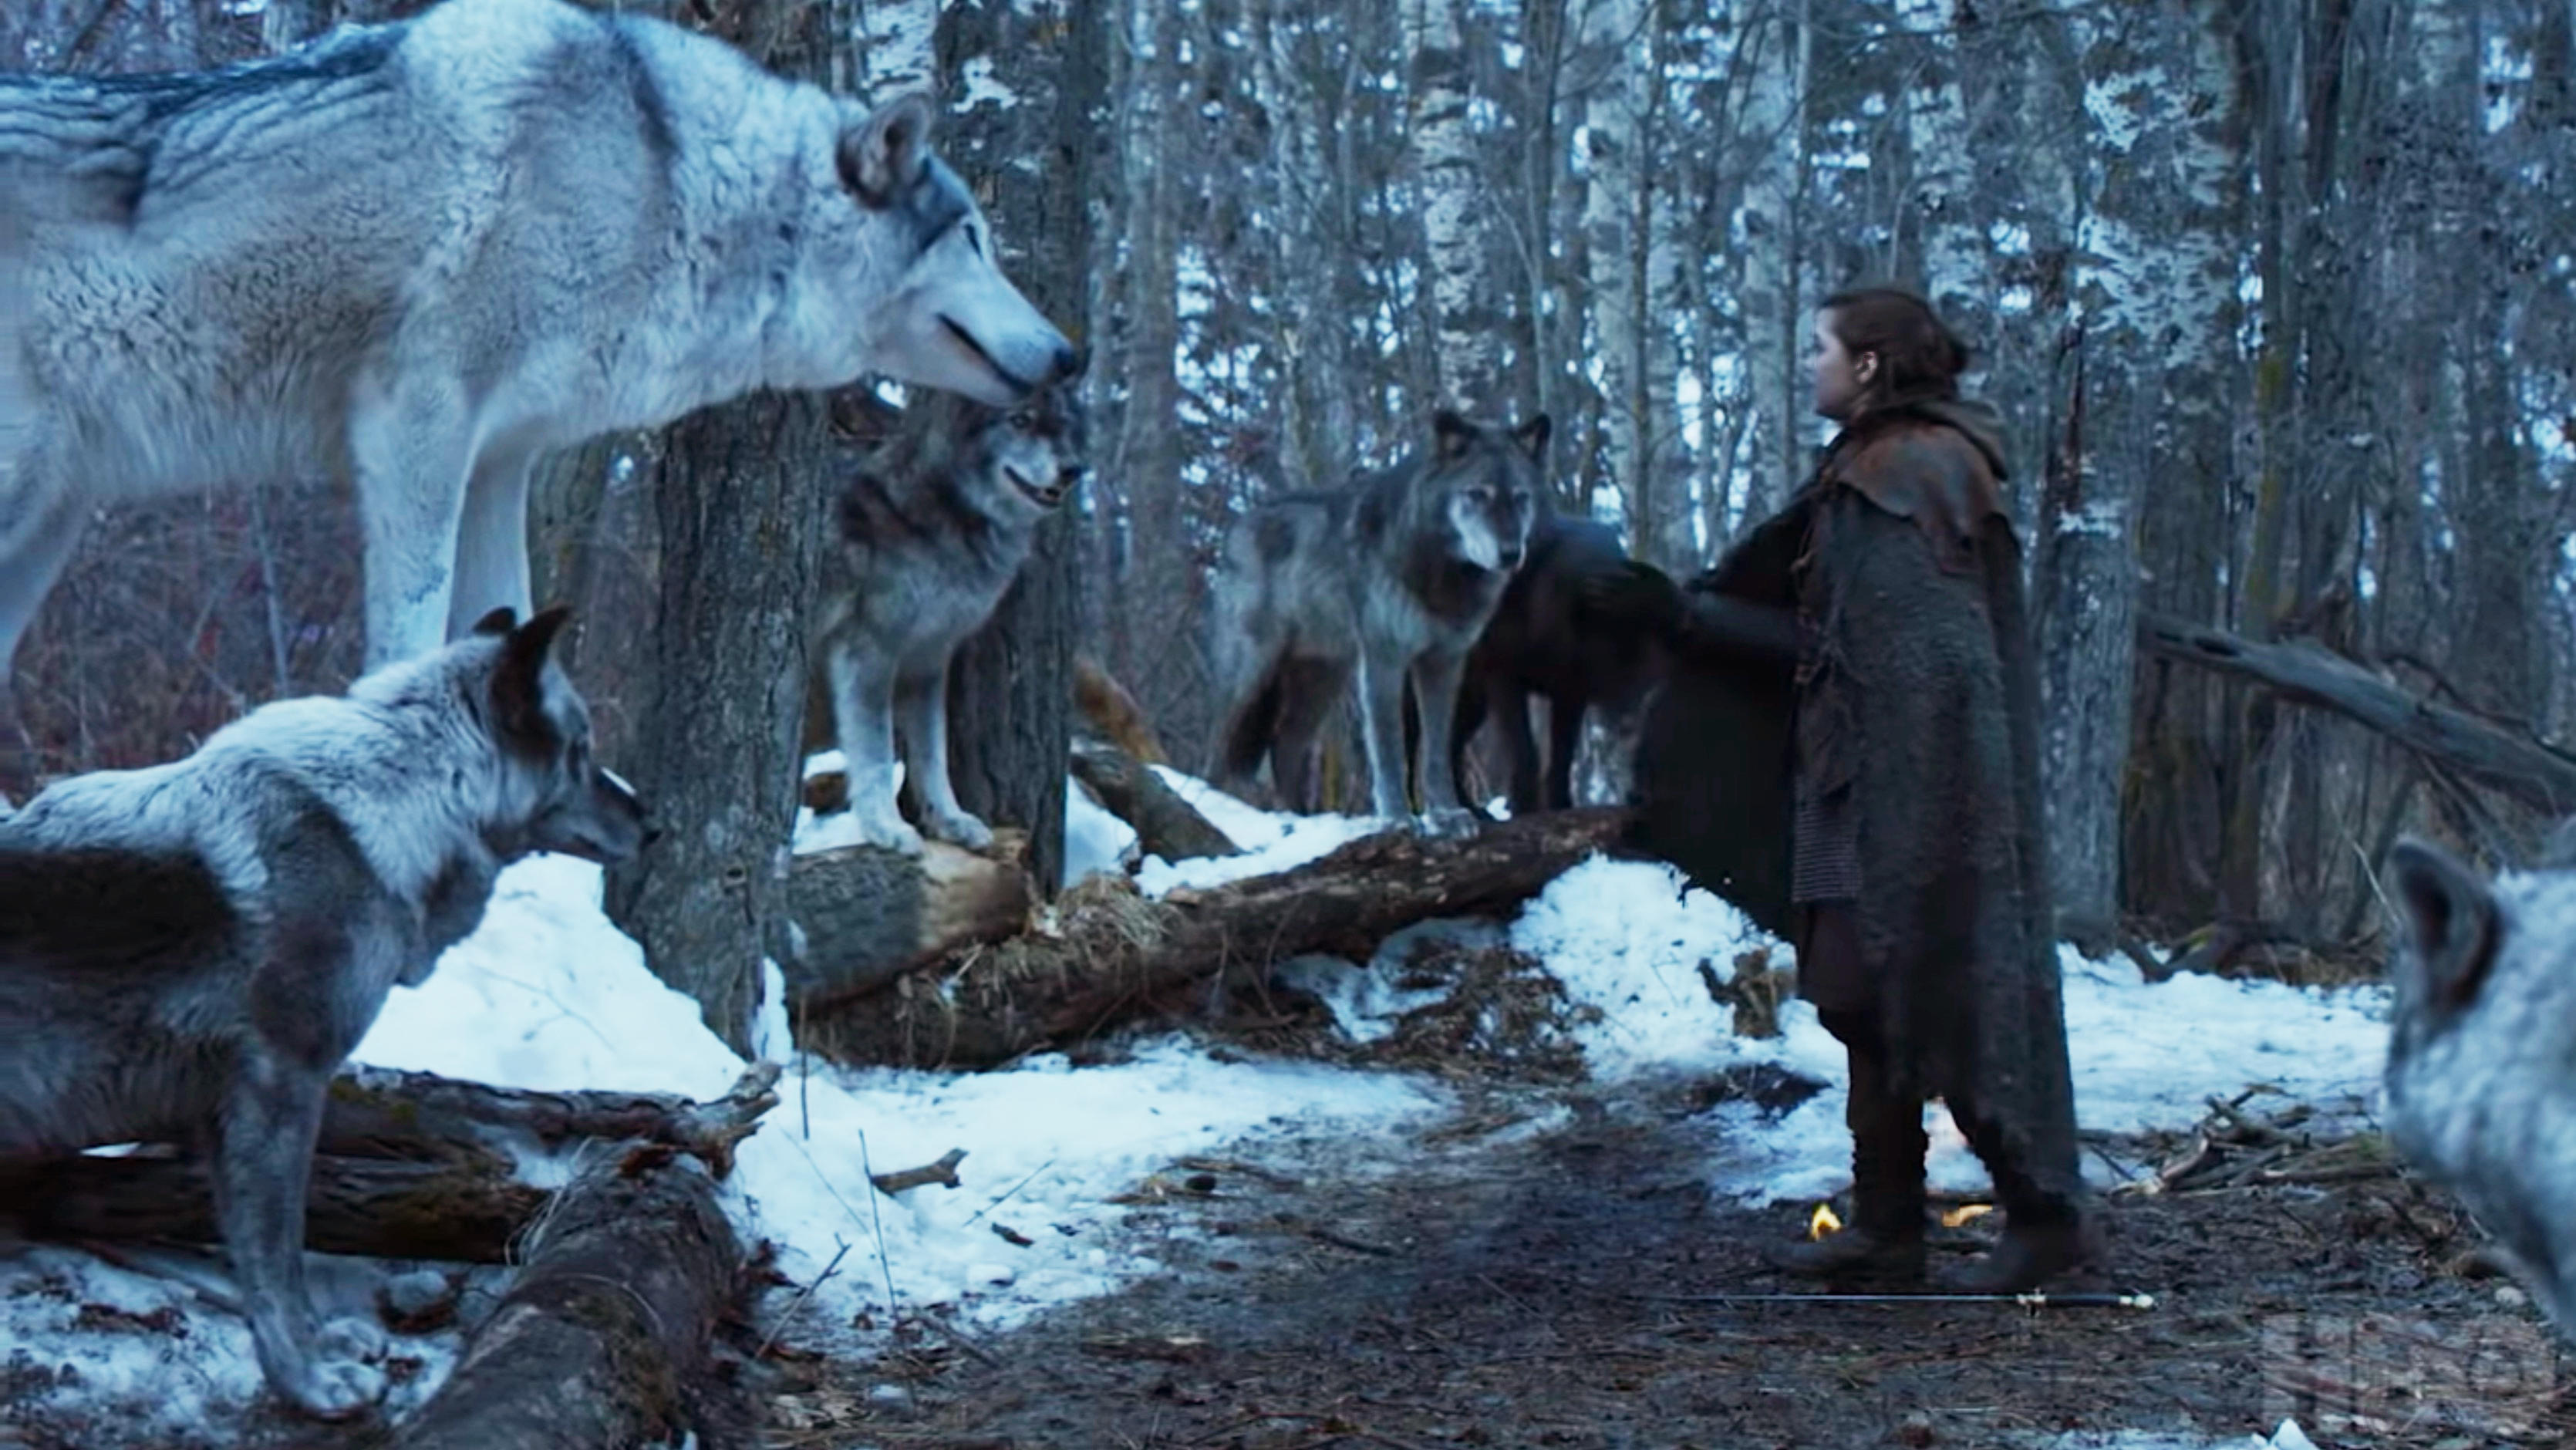 Debunked: There's a parallel between each direwolf and its master